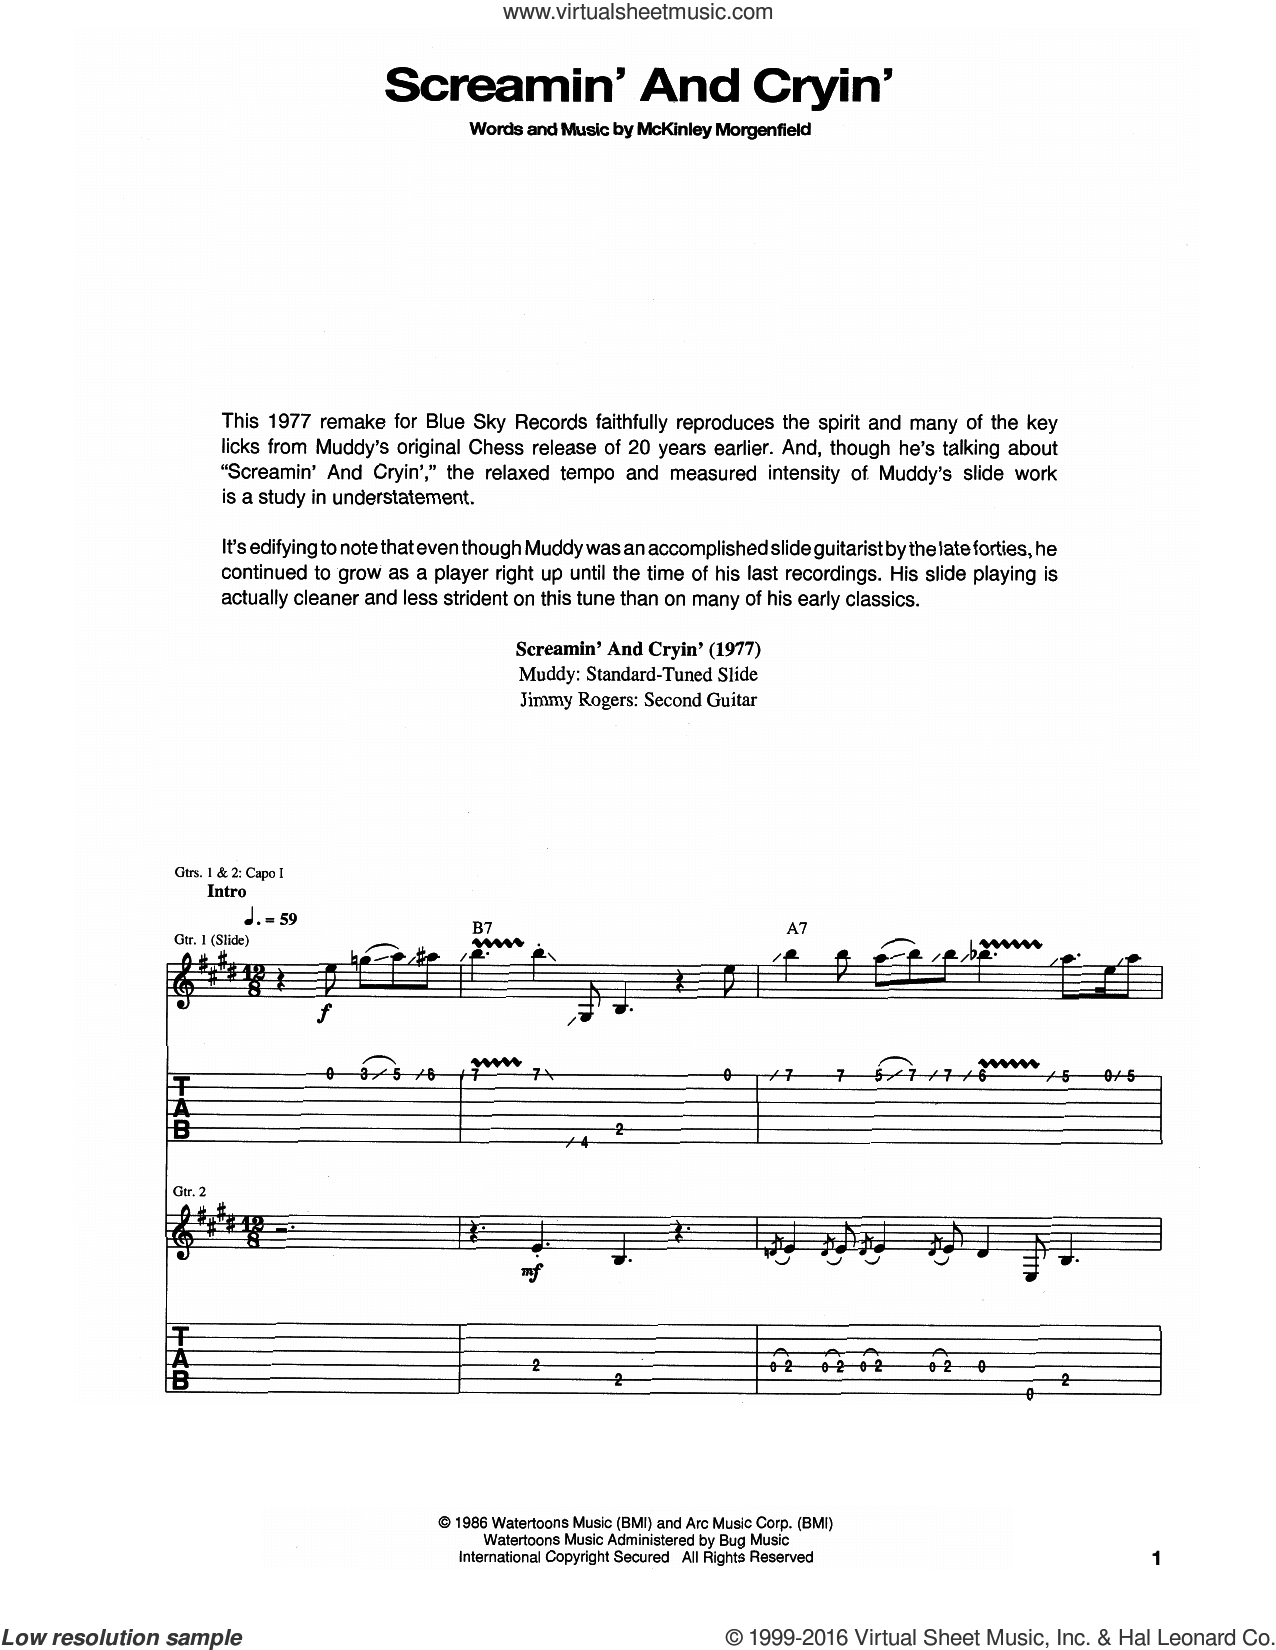 Screamin' And Cryin' sheet music for guitar (tablature) by Muddy Waters. Score Image Preview.